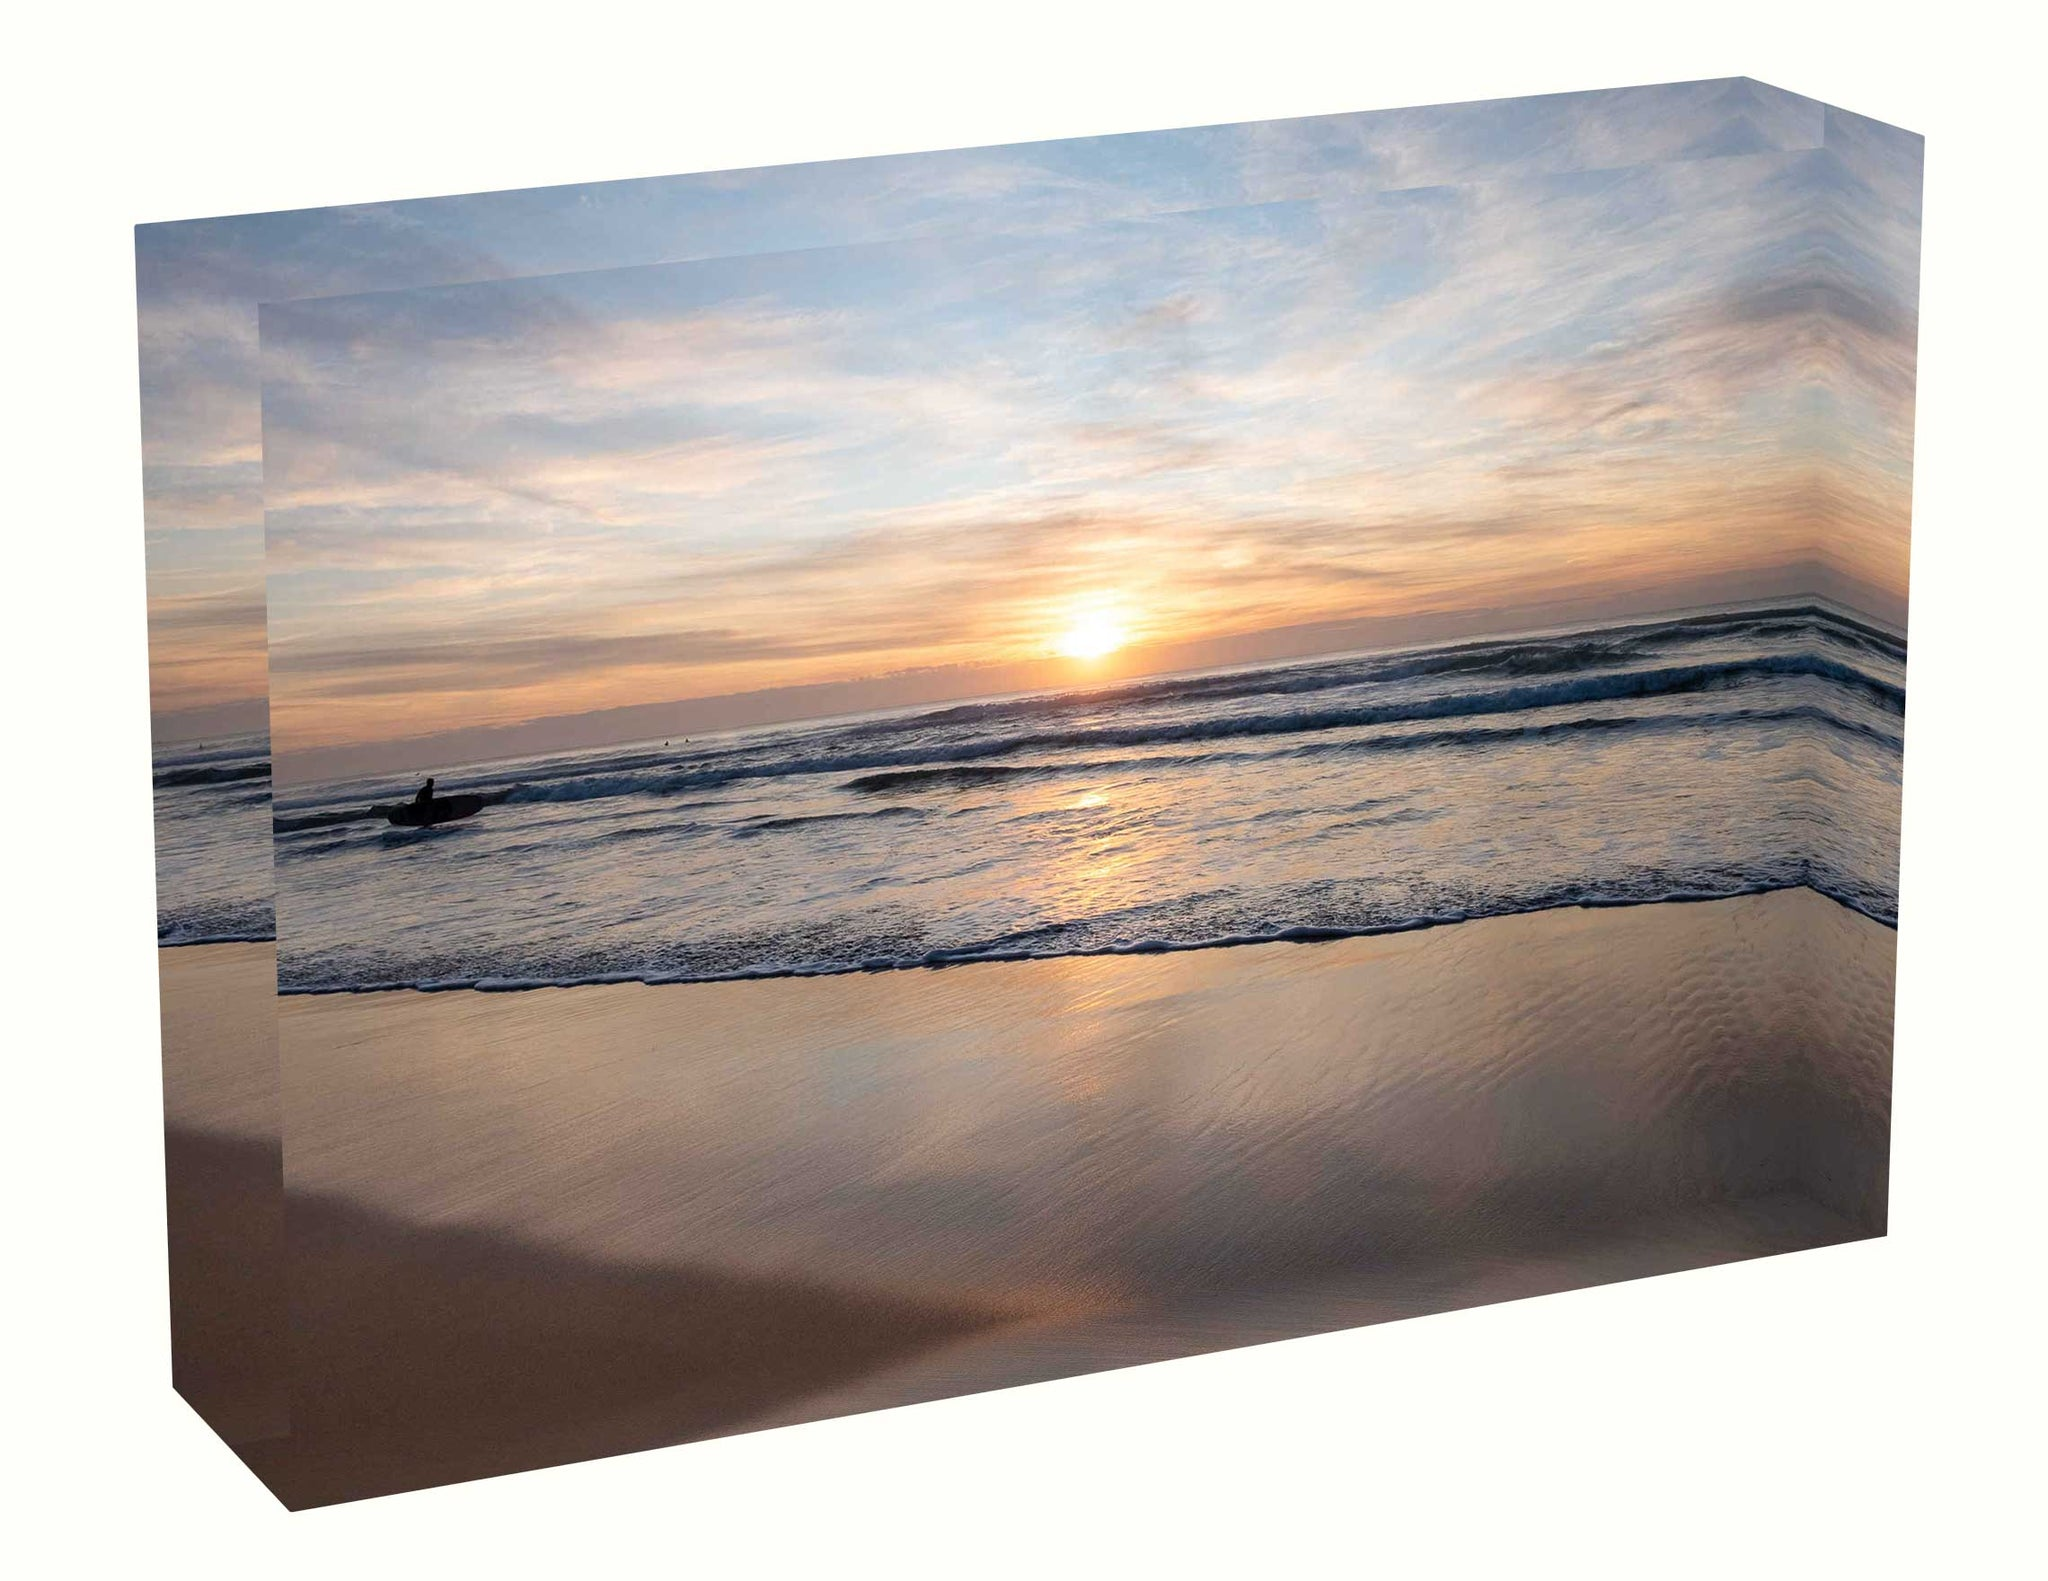 Acrylic block sunrise photo from the 13 June 2020 at Manly beach in Sydney